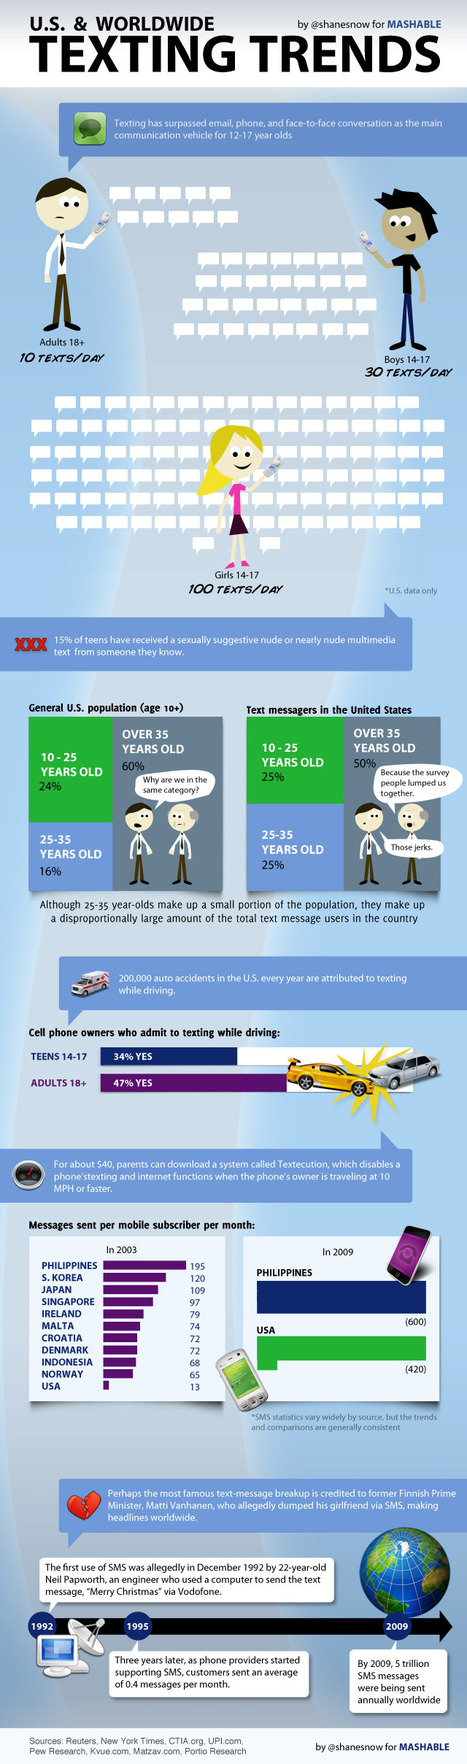 """US & Worldwide Texting Trends (infographic) 